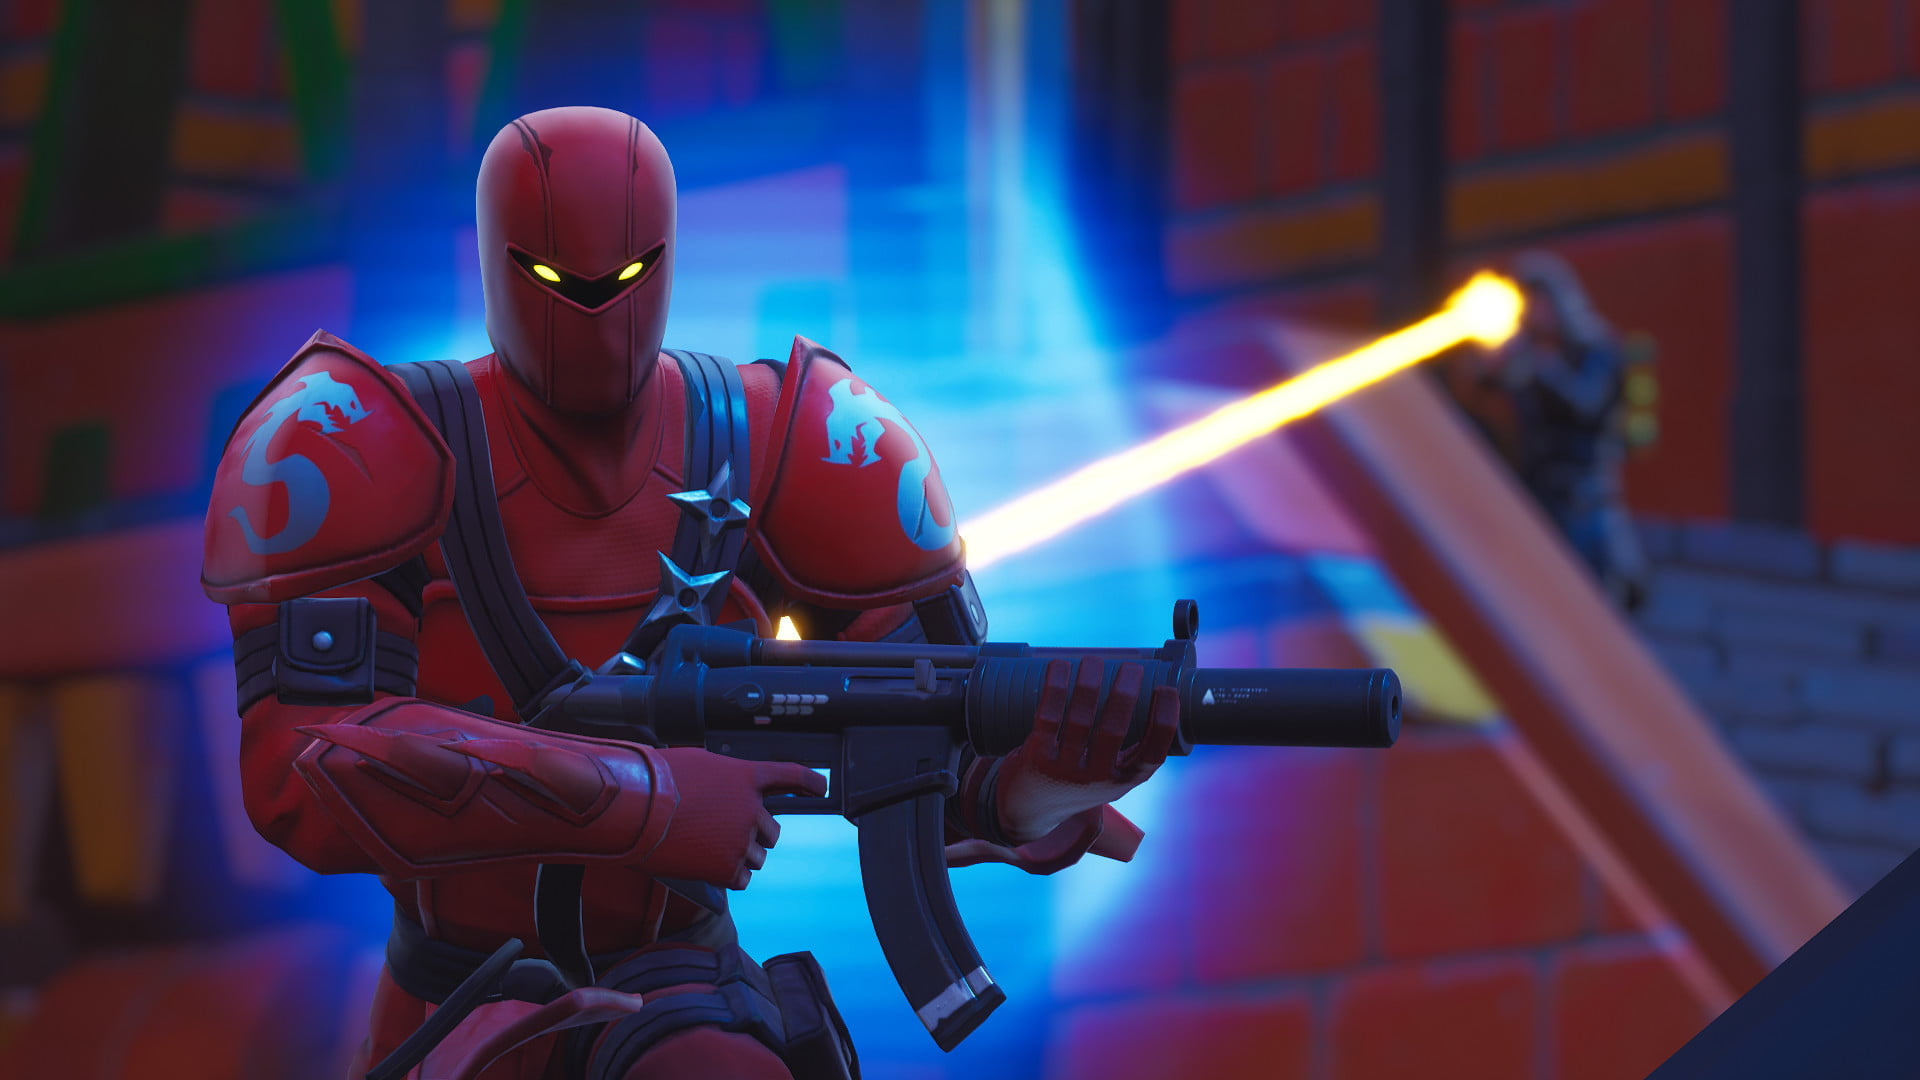 fortnite is changing how we choose online games digital trends - how many players are online in fortnite